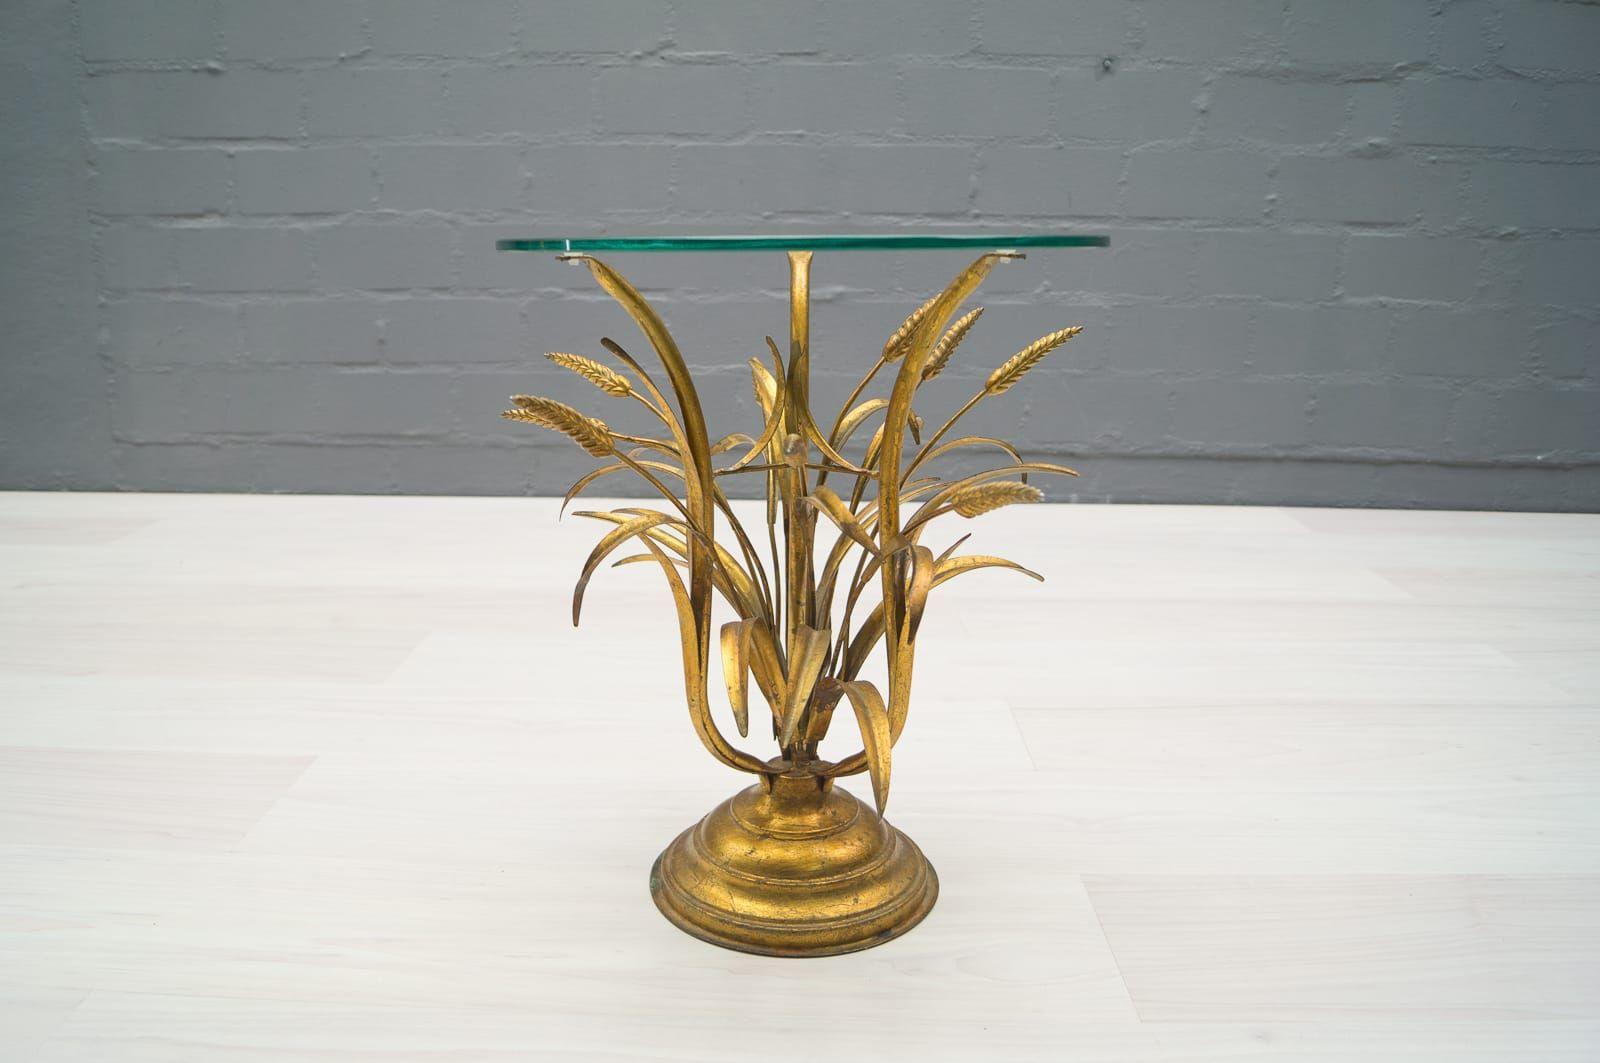 Mid century wheat sheaf coffee table irish antique dealers - Hollywood Regency Wheat Sheaf Side Table In Gold 1960s For Sale At Pamono